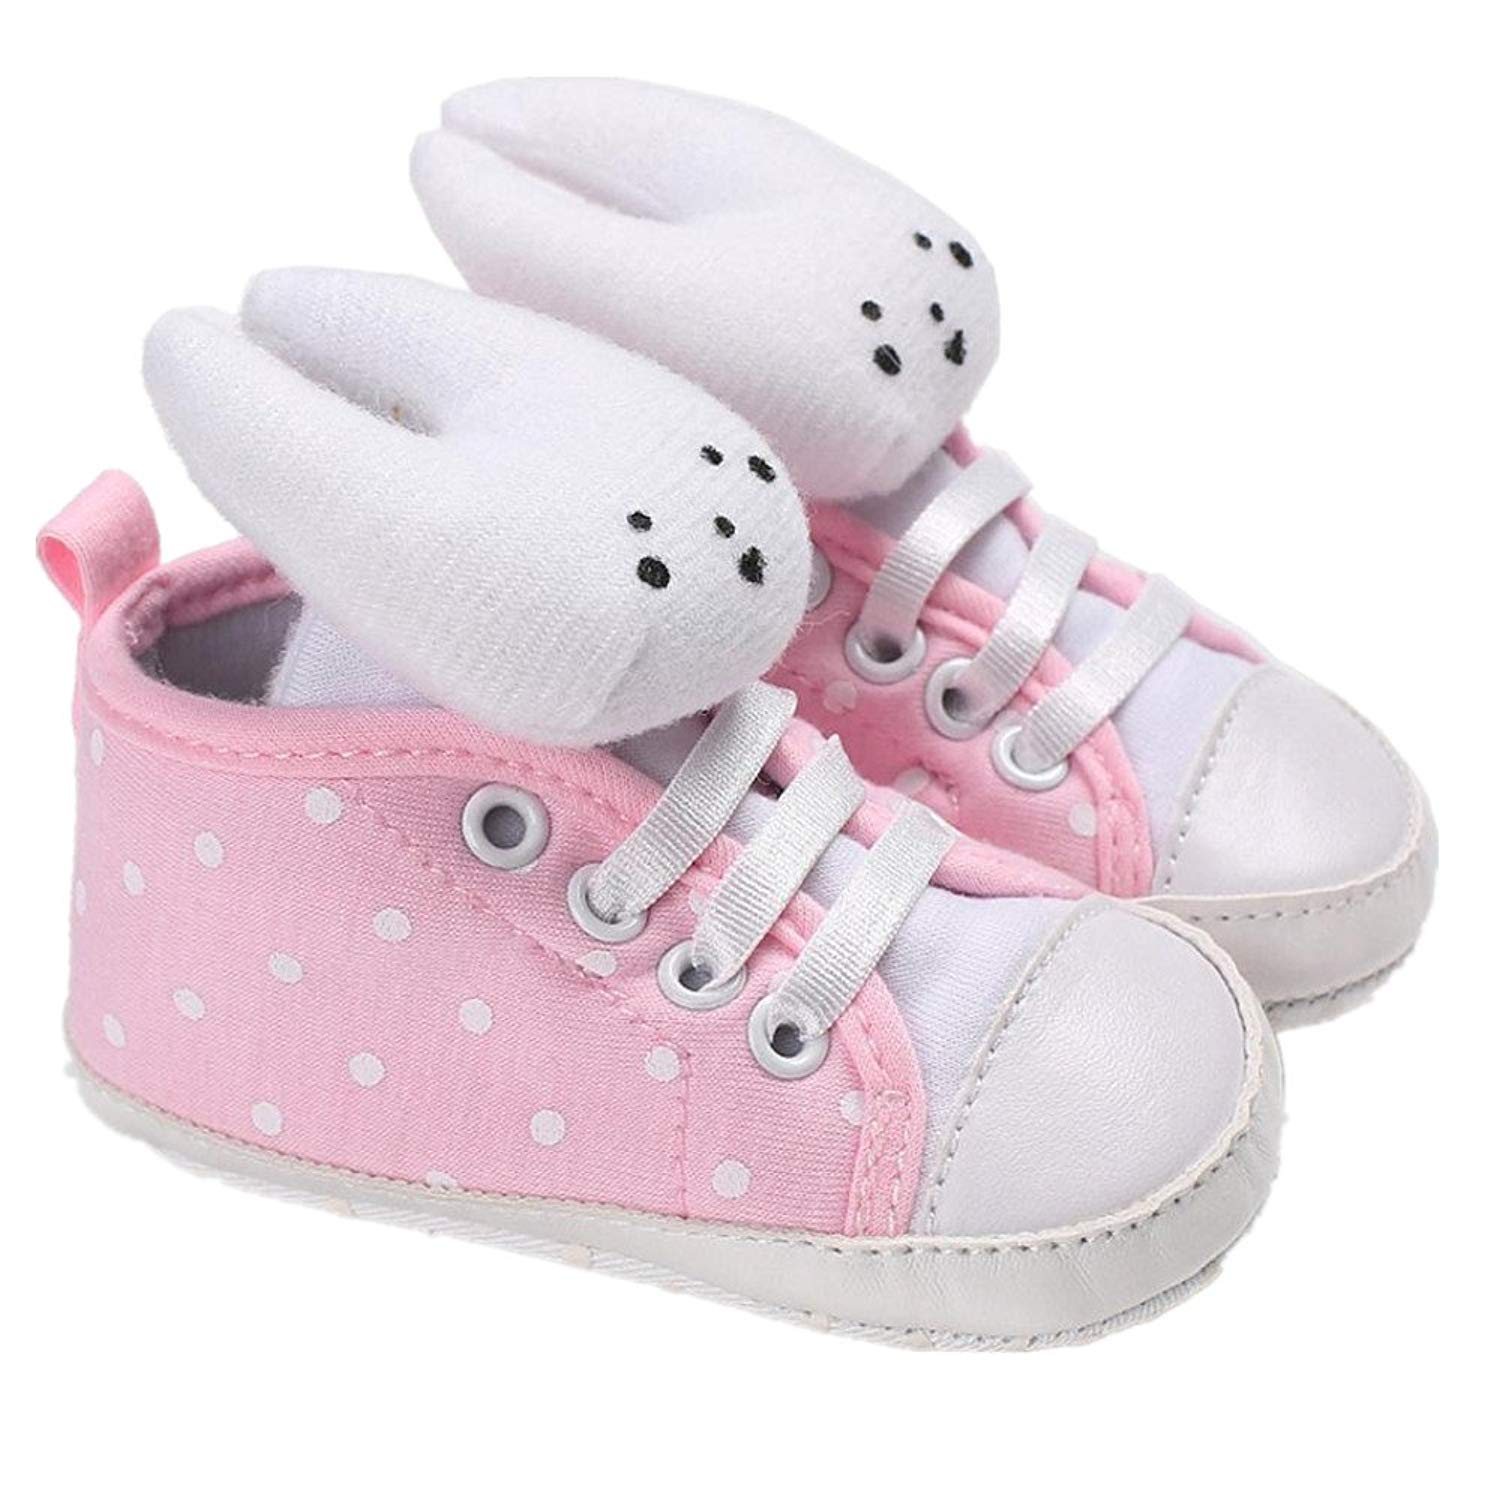 0a538a4e69eae Cheap Cute Girl Sneakers, find Cute Girl Sneakers deals on line at ...